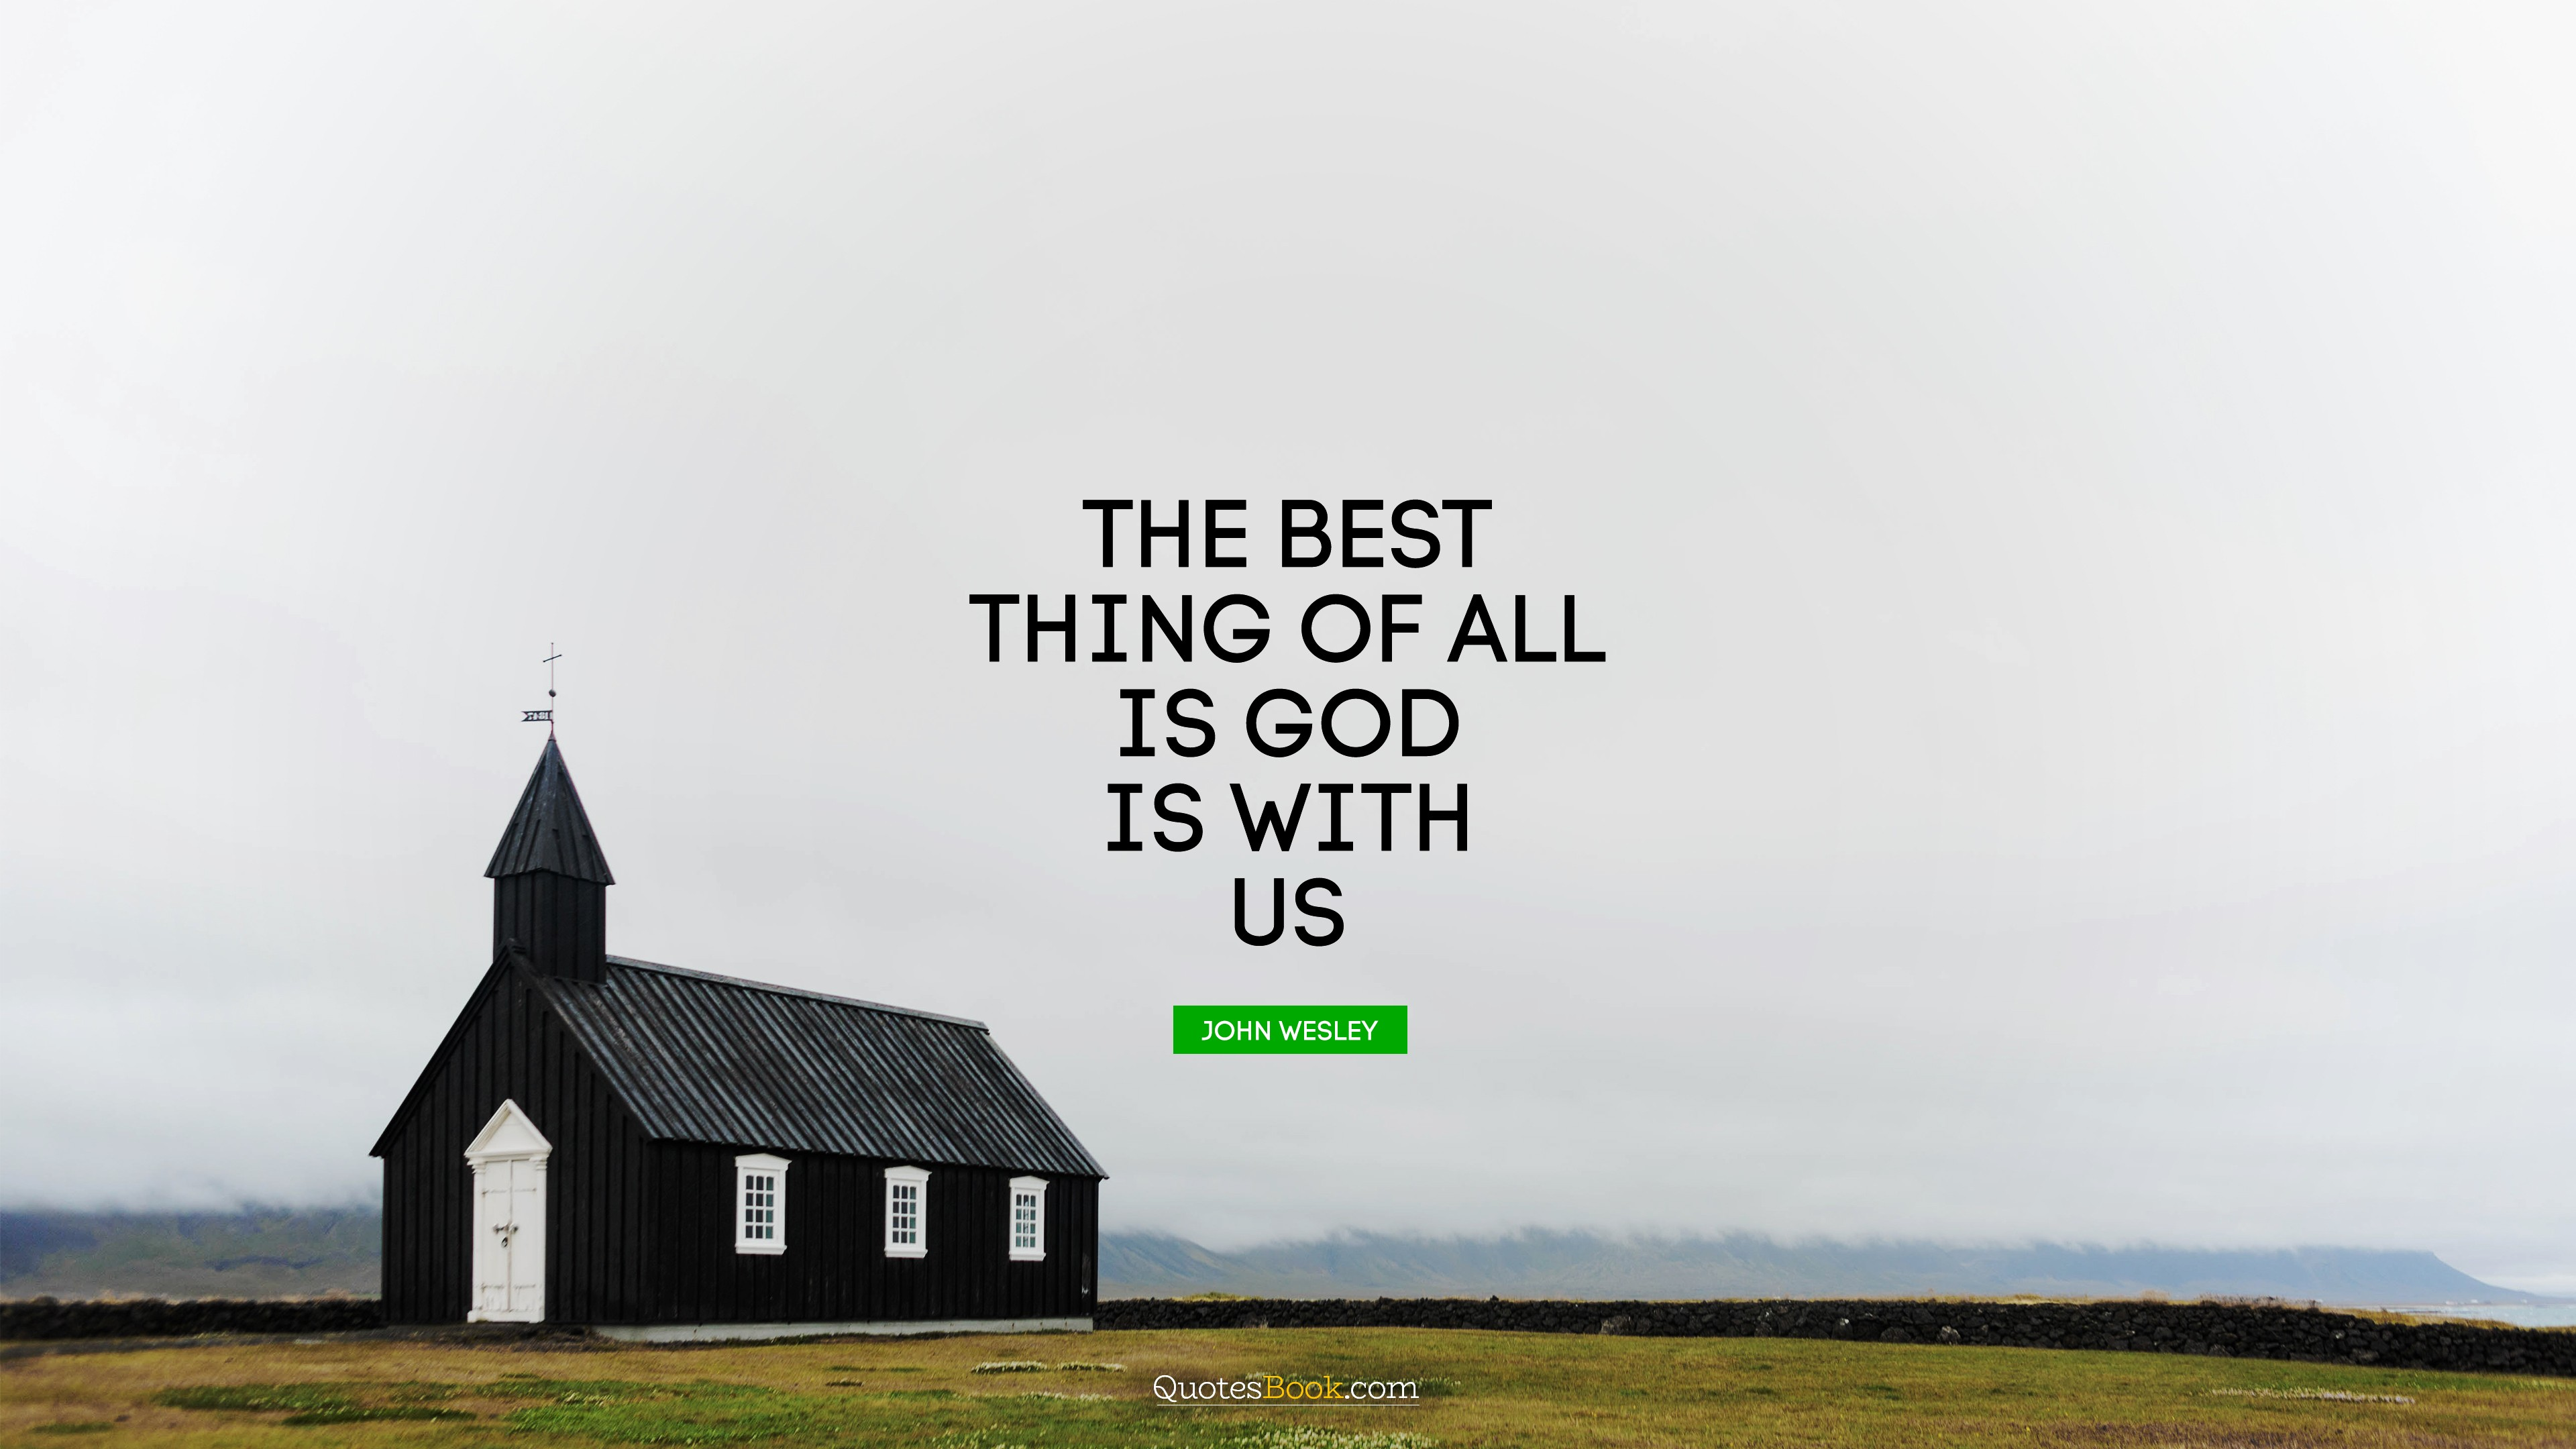 the best thing of all is god is us quote by john wesley